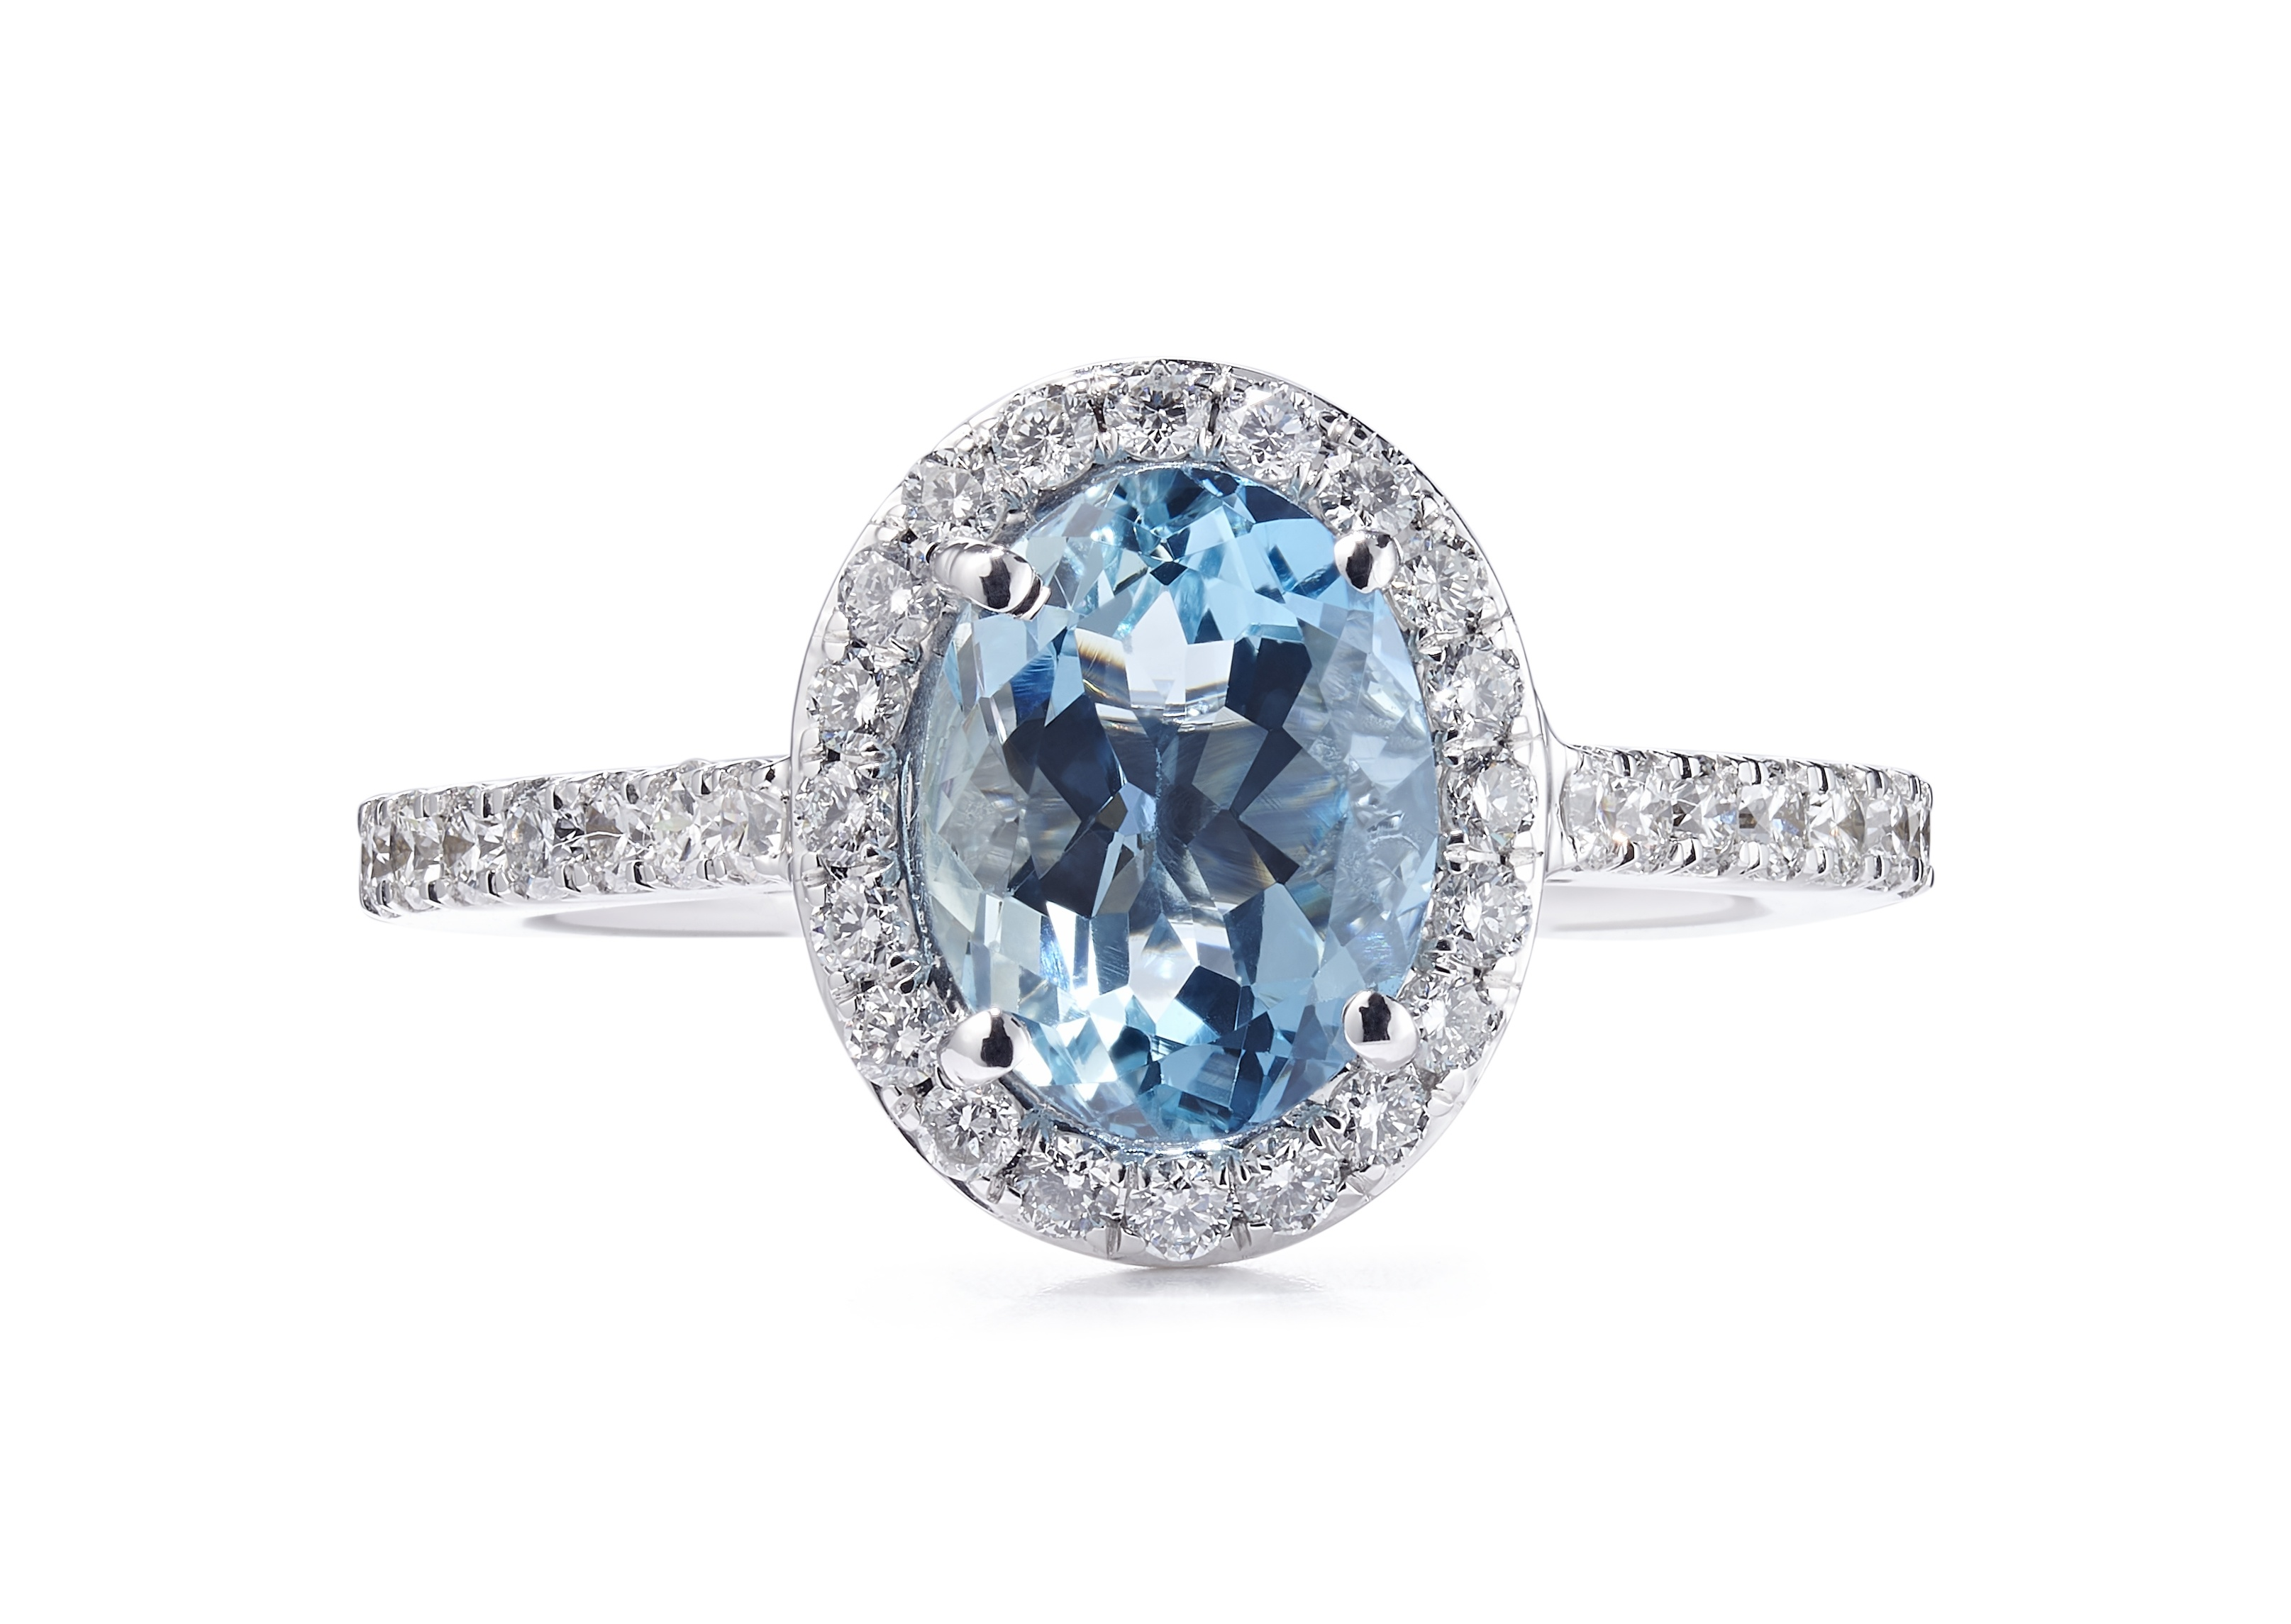 18ct White Gold Aquamarine and Diamond Oval Halo Design Ring